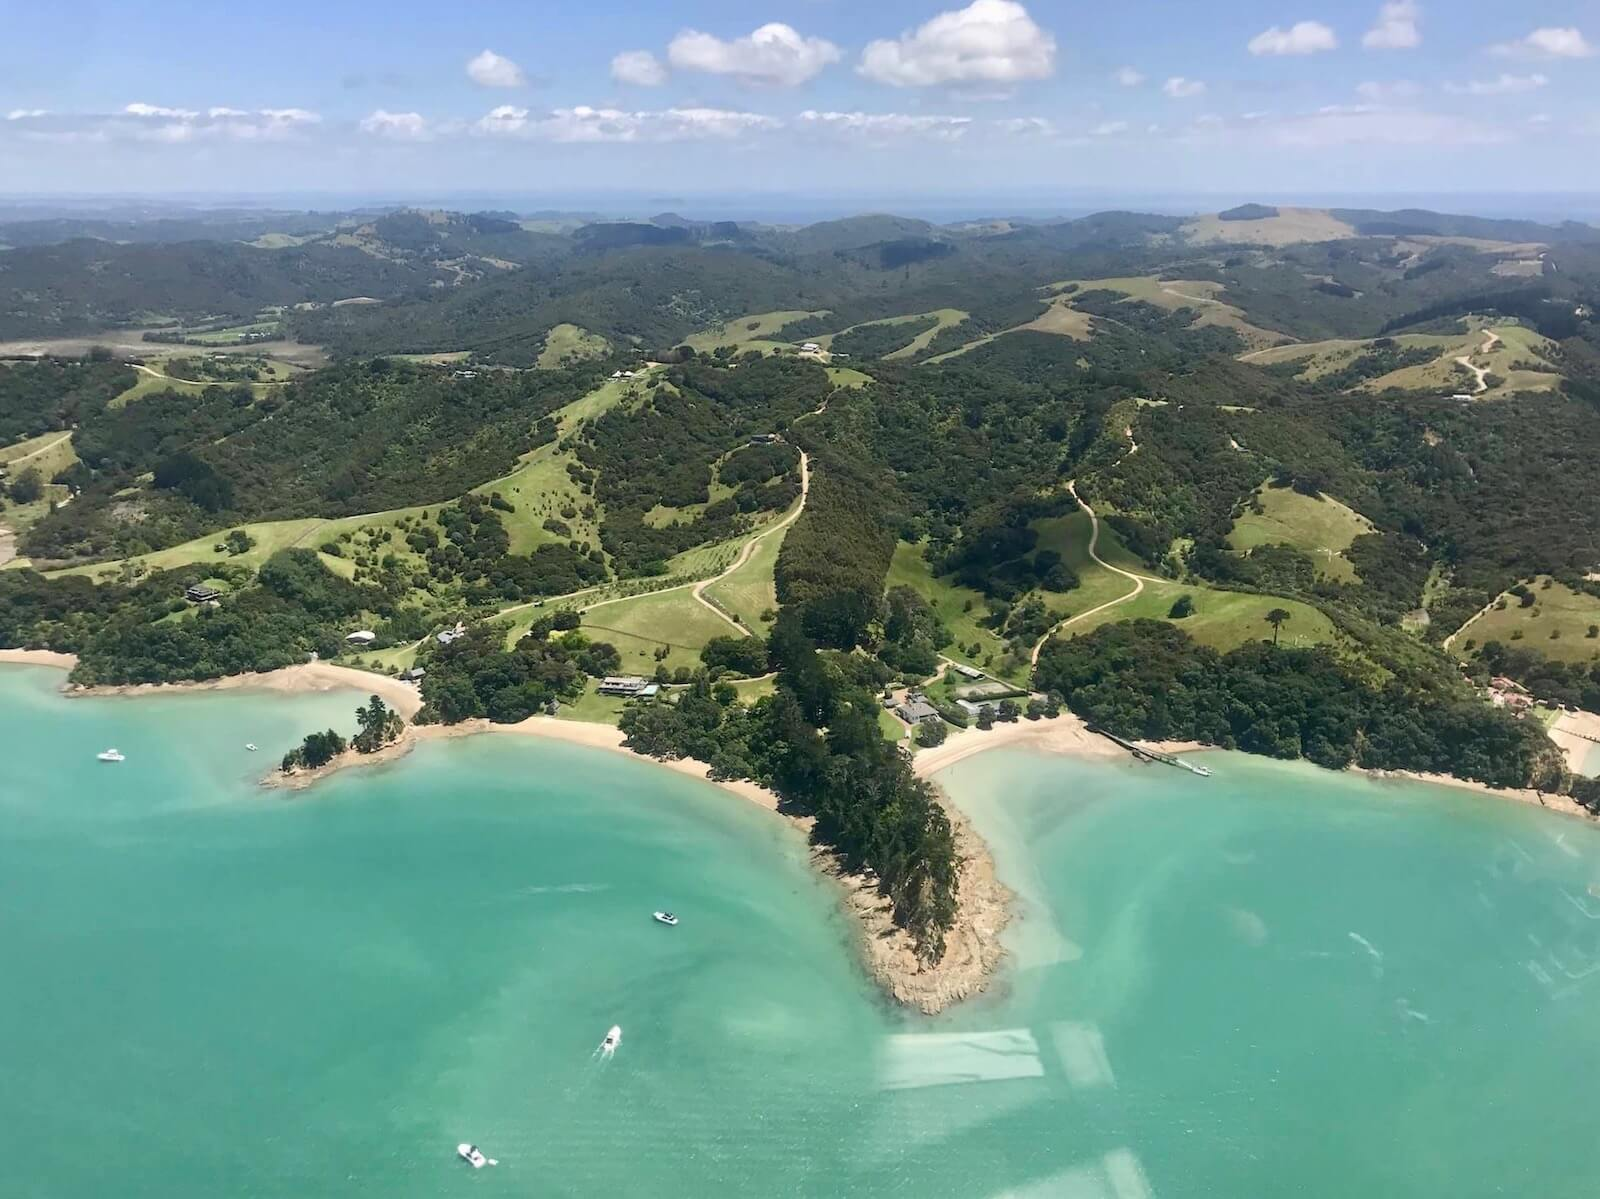 helicopter ride to cook's beach